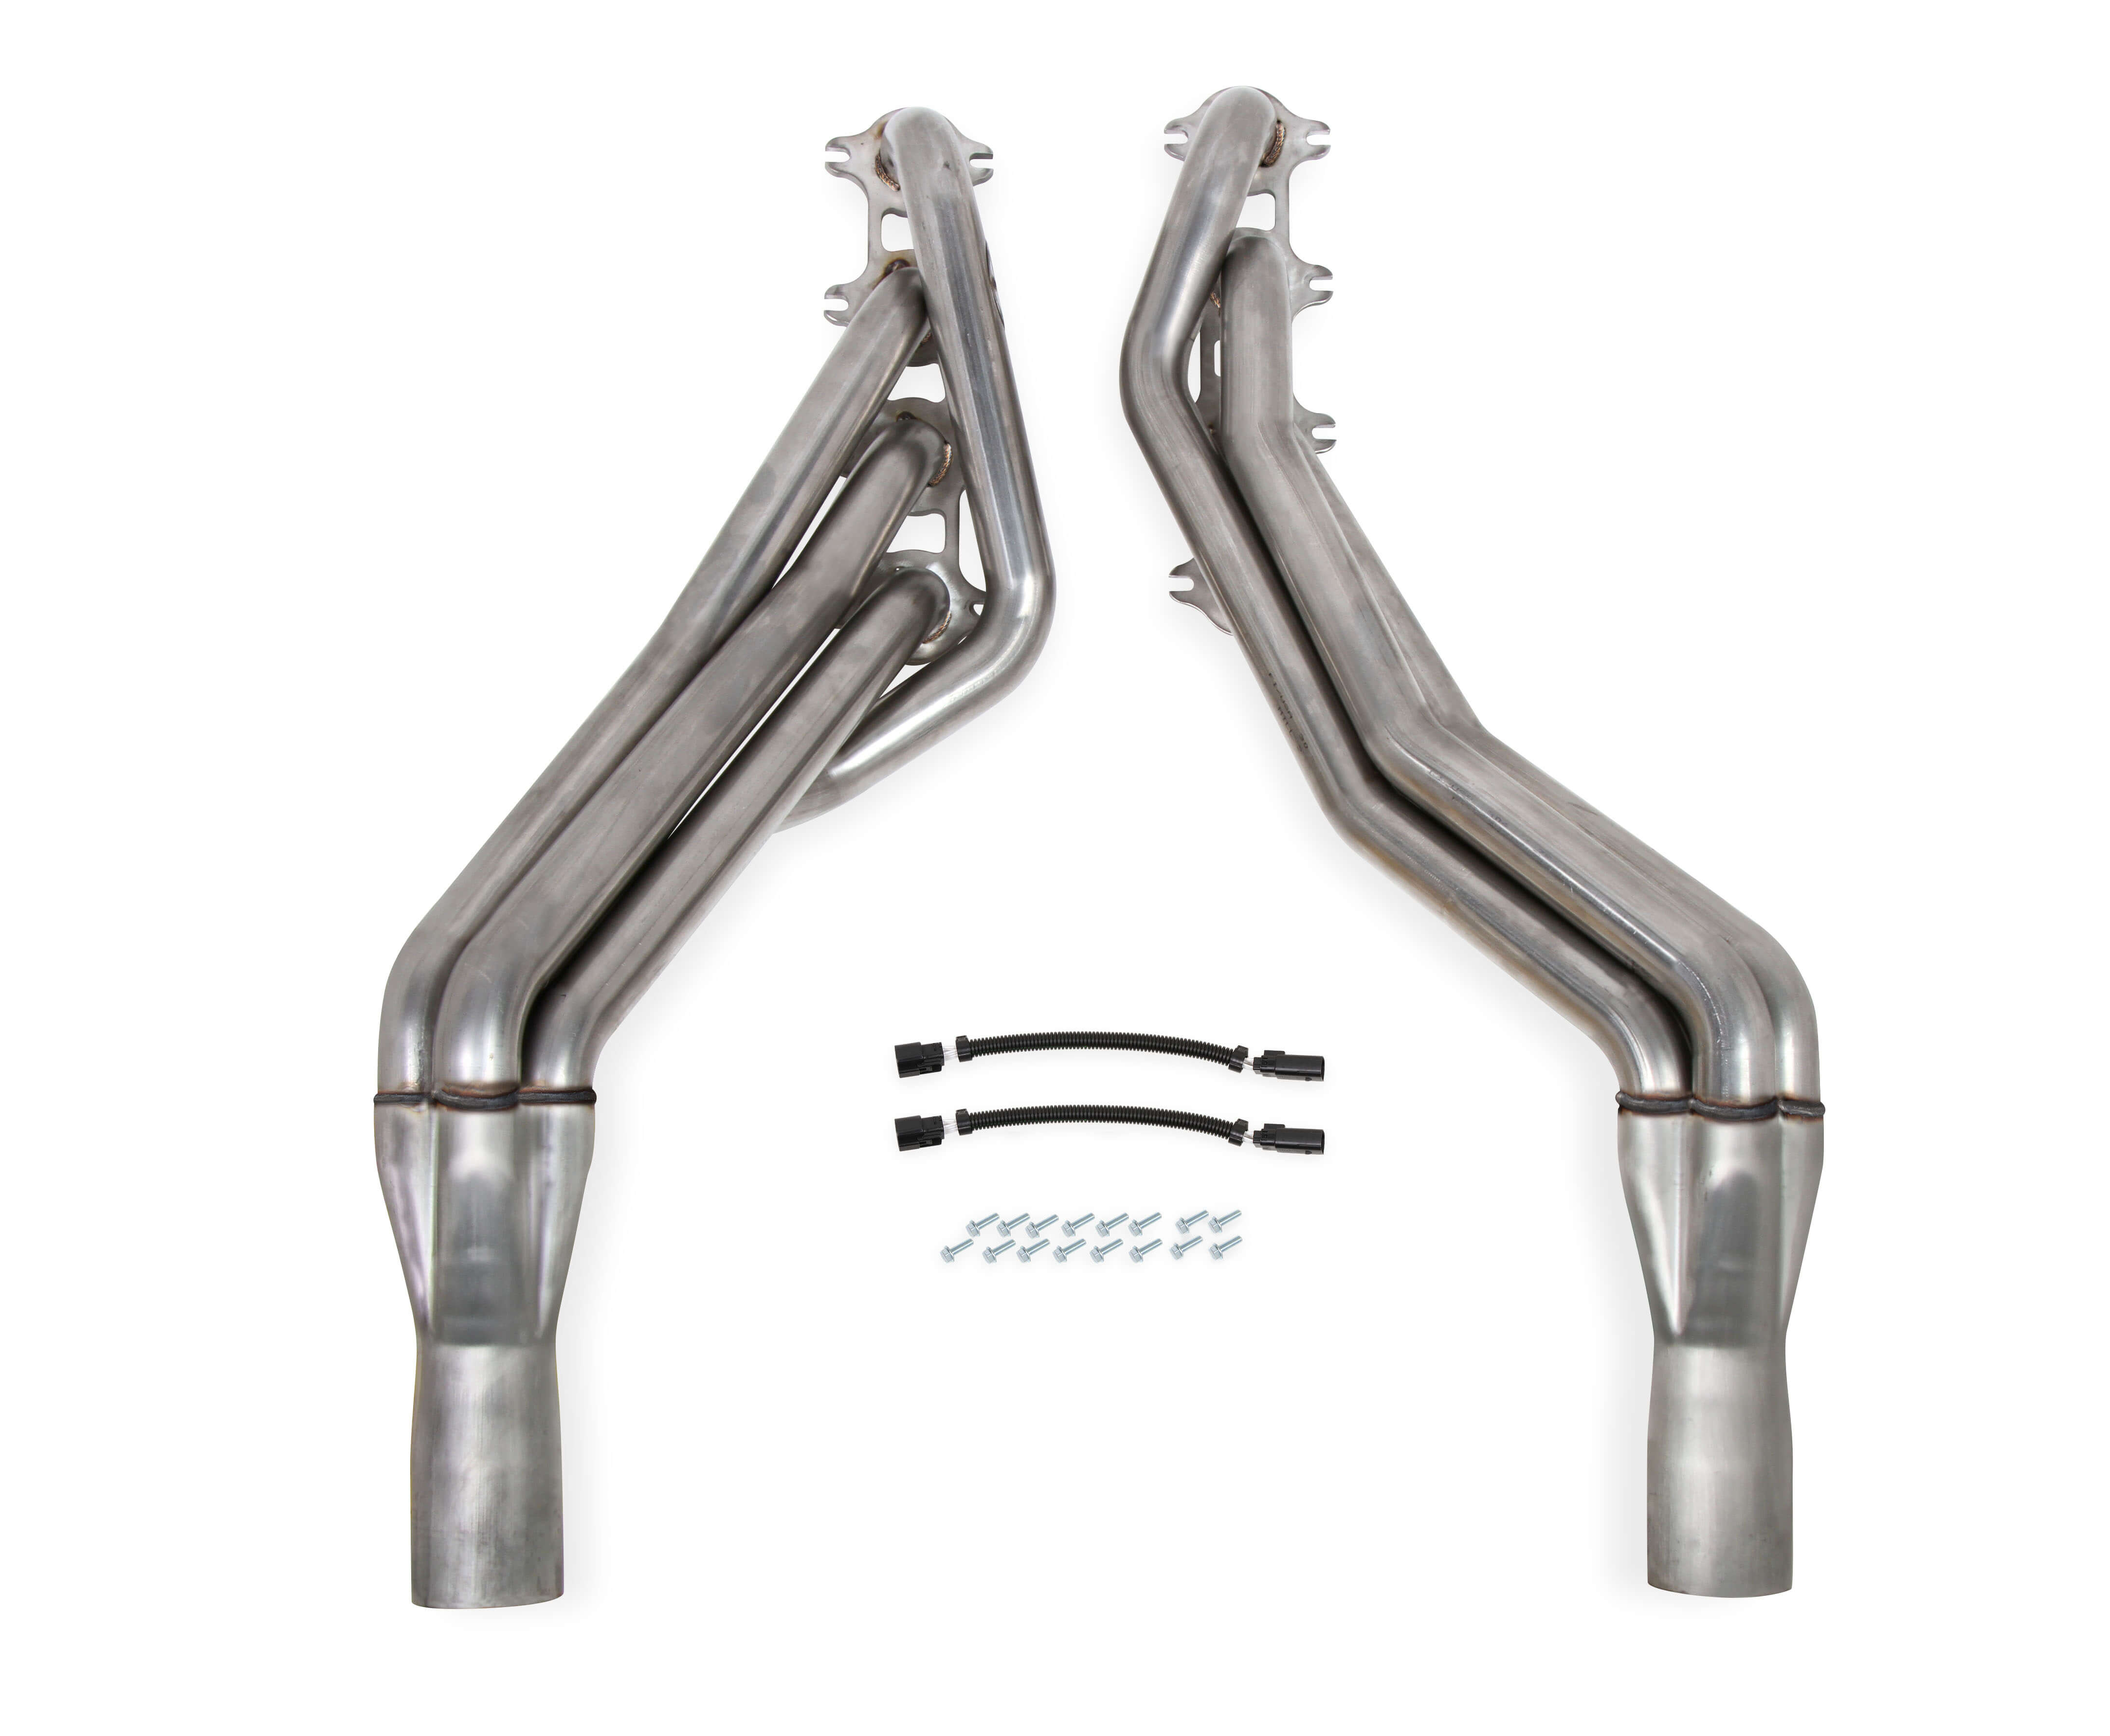 "2005-2009 Ford Mustang GT 4.6L V8 Hooker Blackheart 1 5/8"" Stainless Steel Long Tube Headers"